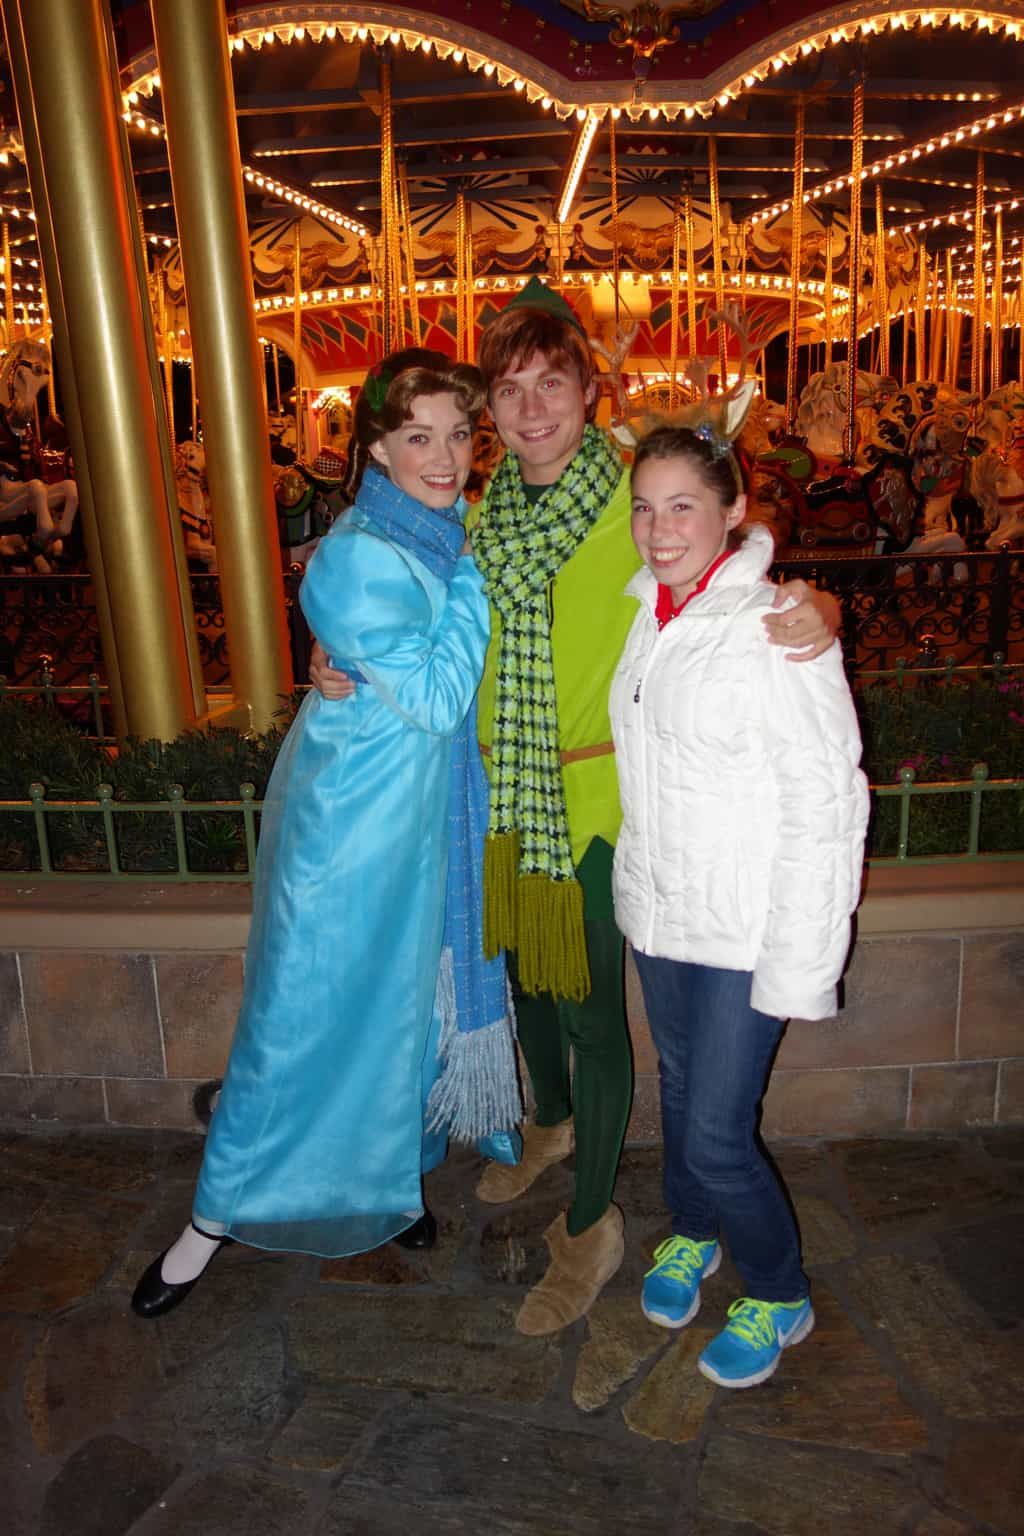 Peter Pan & Wendy Darling at Mickey's Very Merry Christmas Party 2012